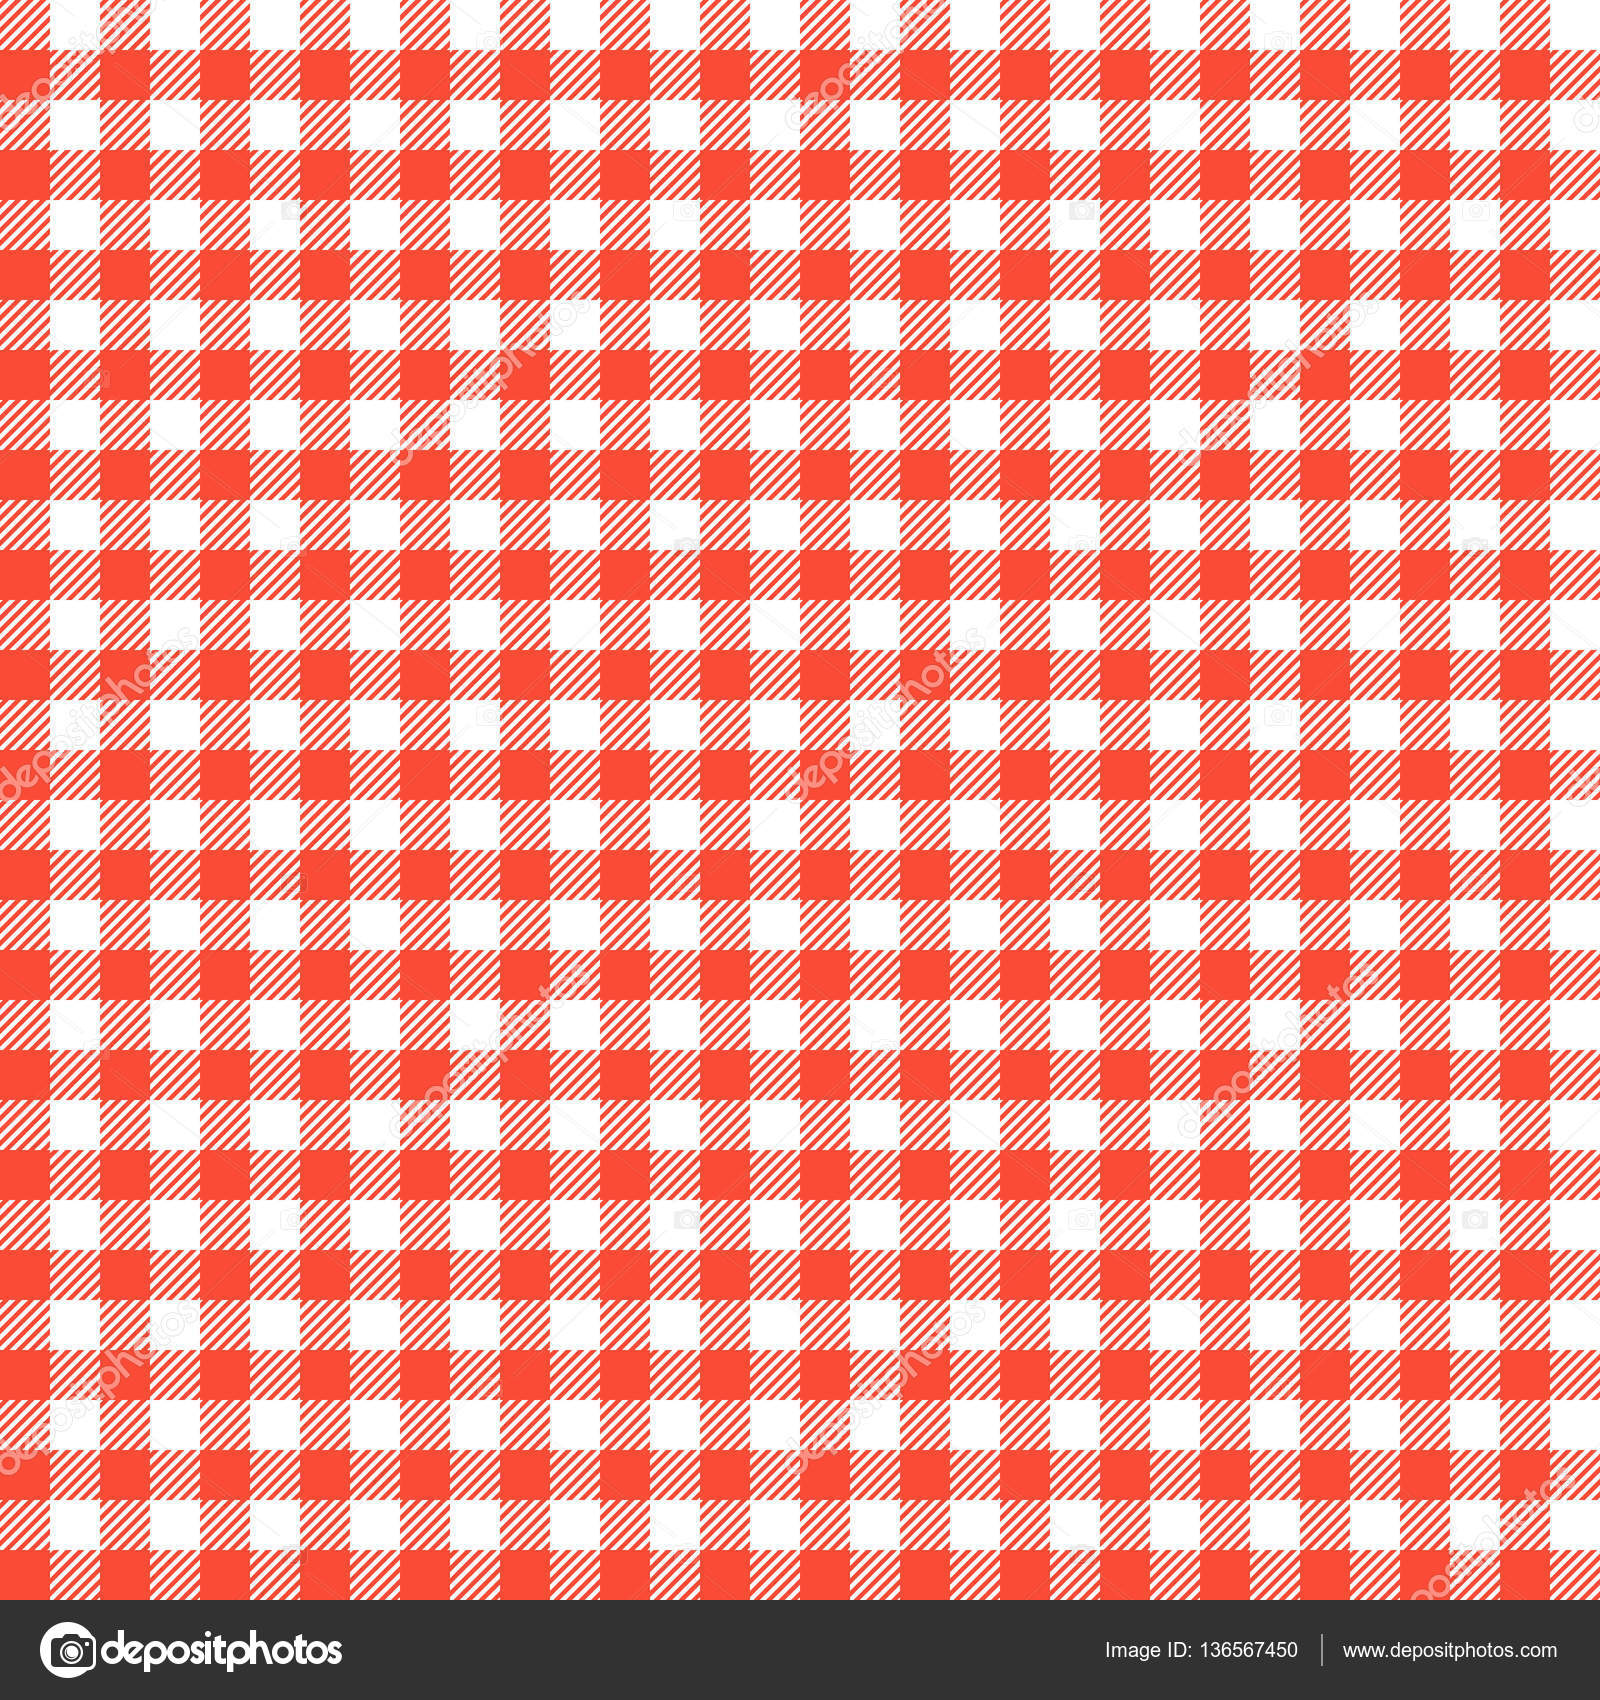 Red Checkered Tablecloths Patterns. U2014 Stock Vector #136567450